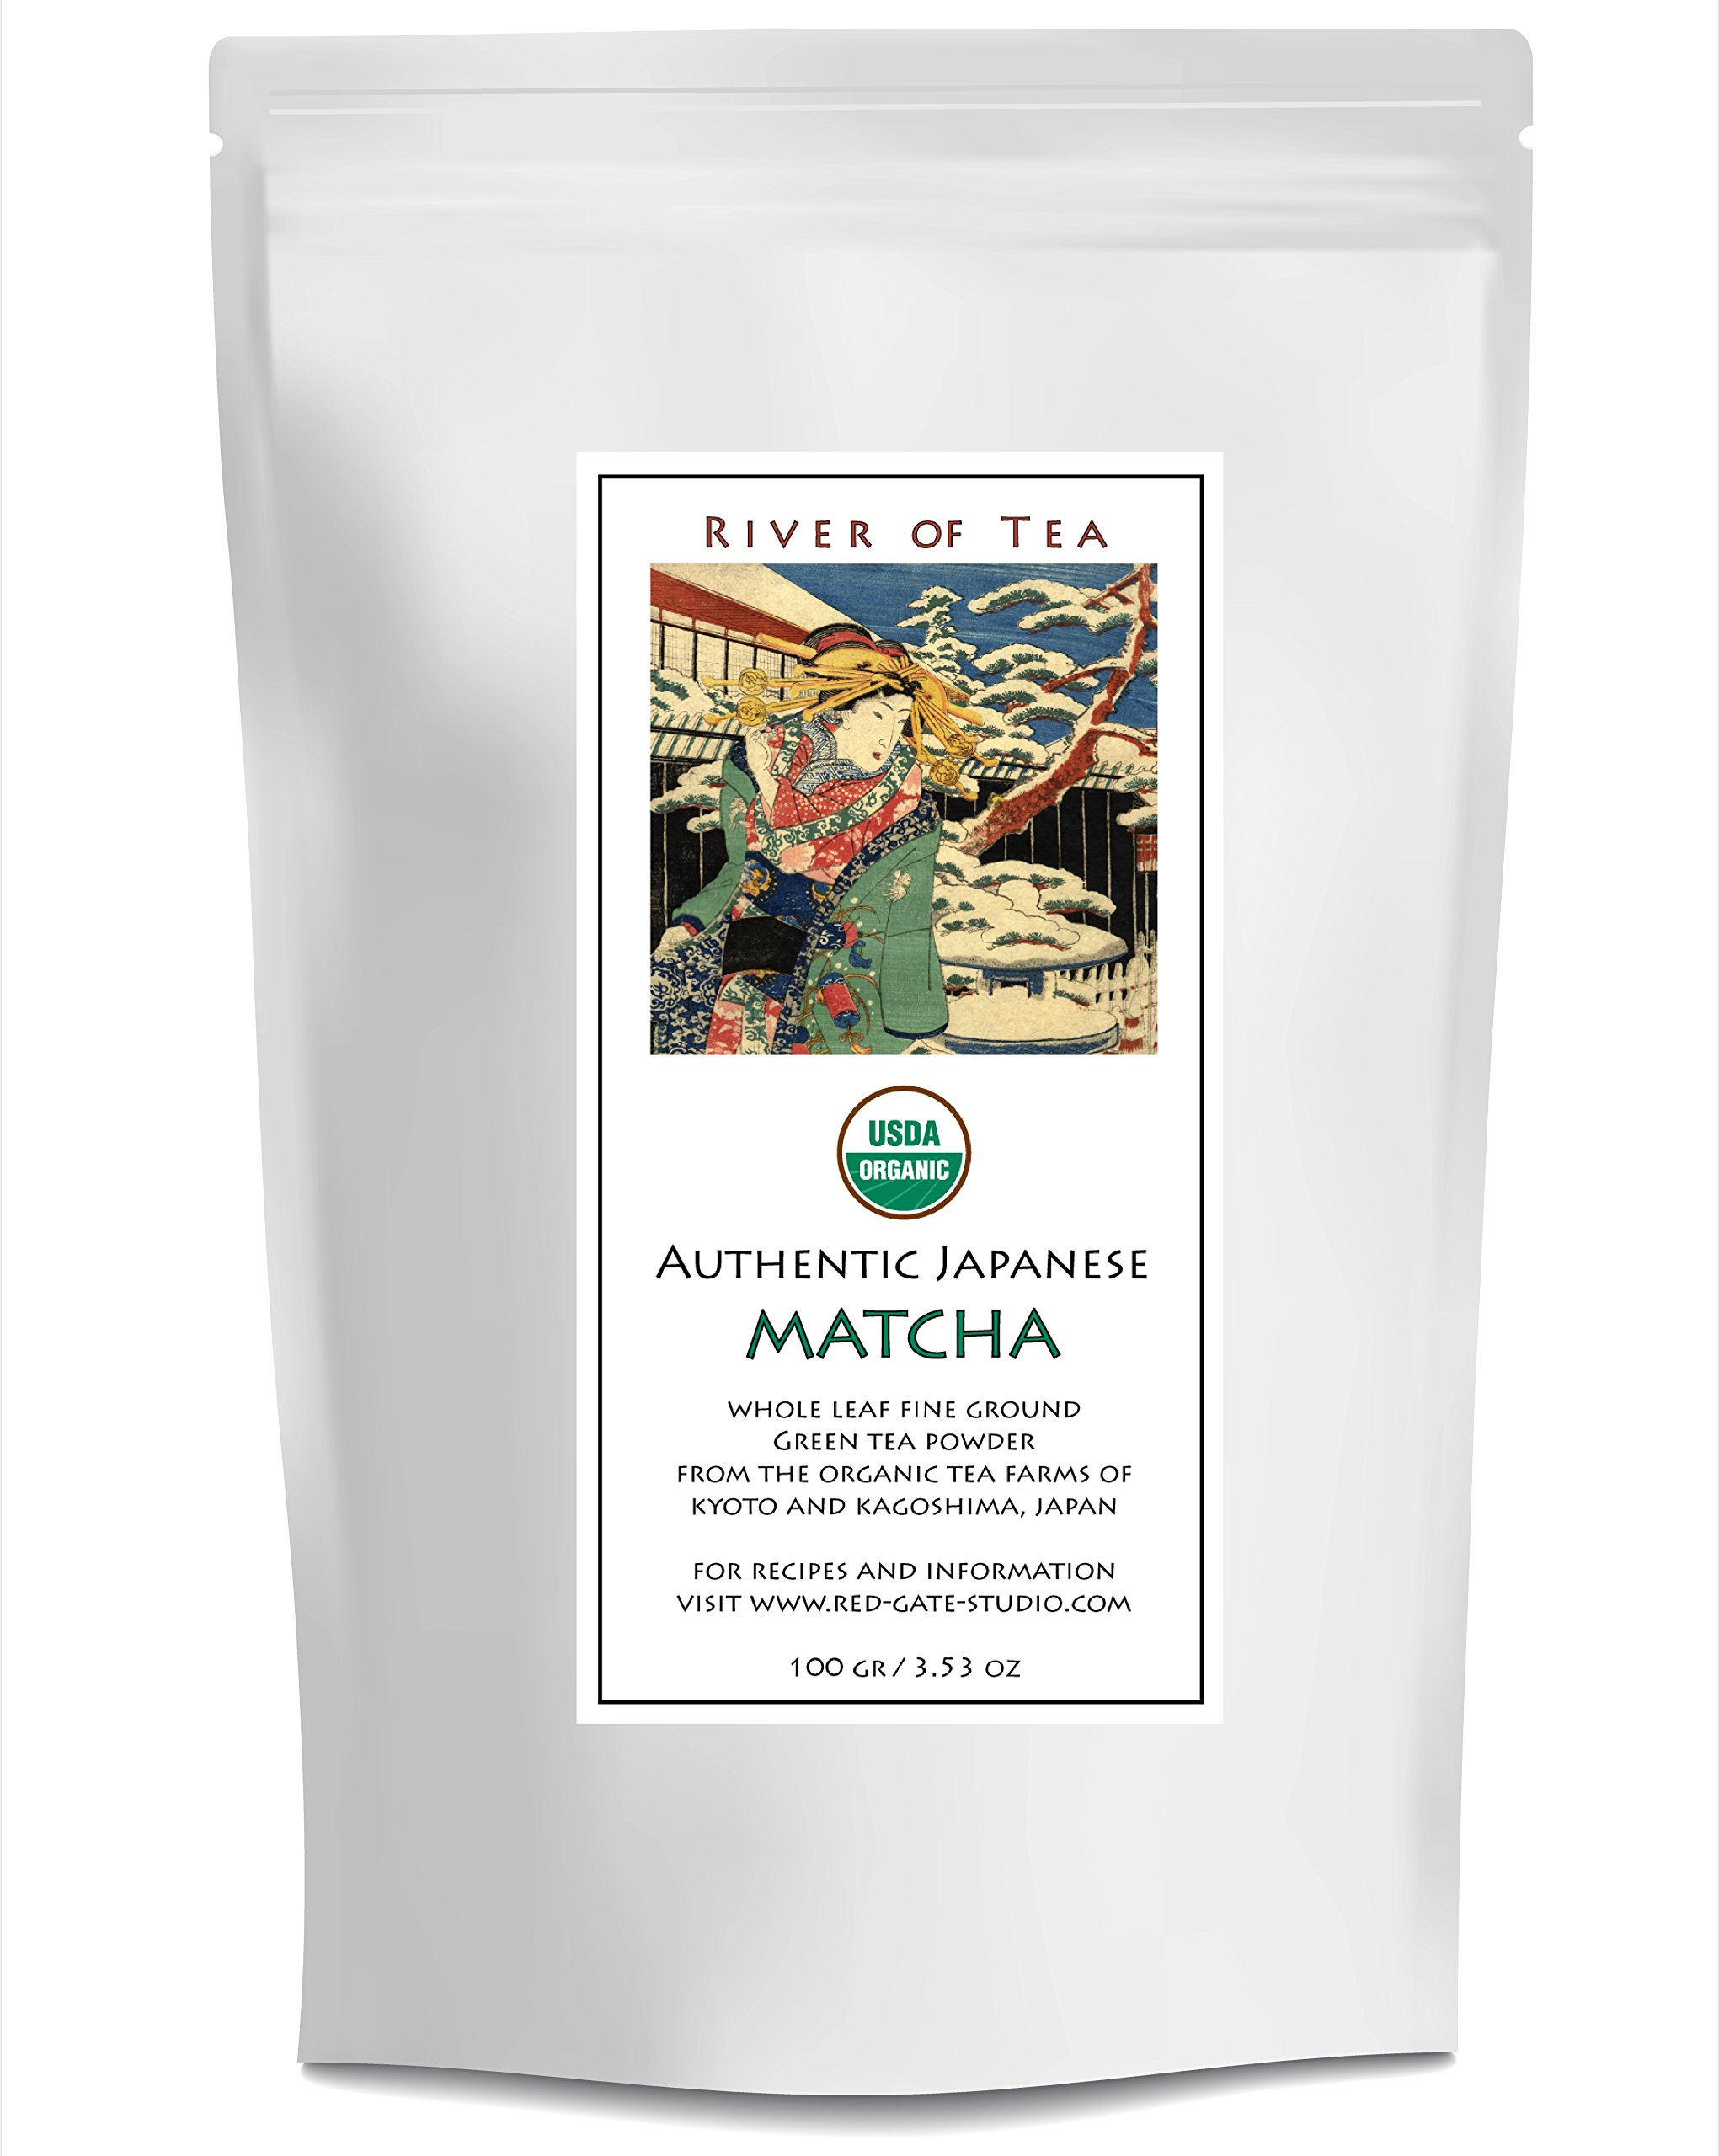 River of Tea Premium Matcha Powder | Authentic Japanese Matcha - Pure Culinary Grade from the Organic Farms of Kyoto and Kagoshima. Create the Perfect Matcha Dessert or Healthy Treat -100g (3.53 oz) by River of Tea